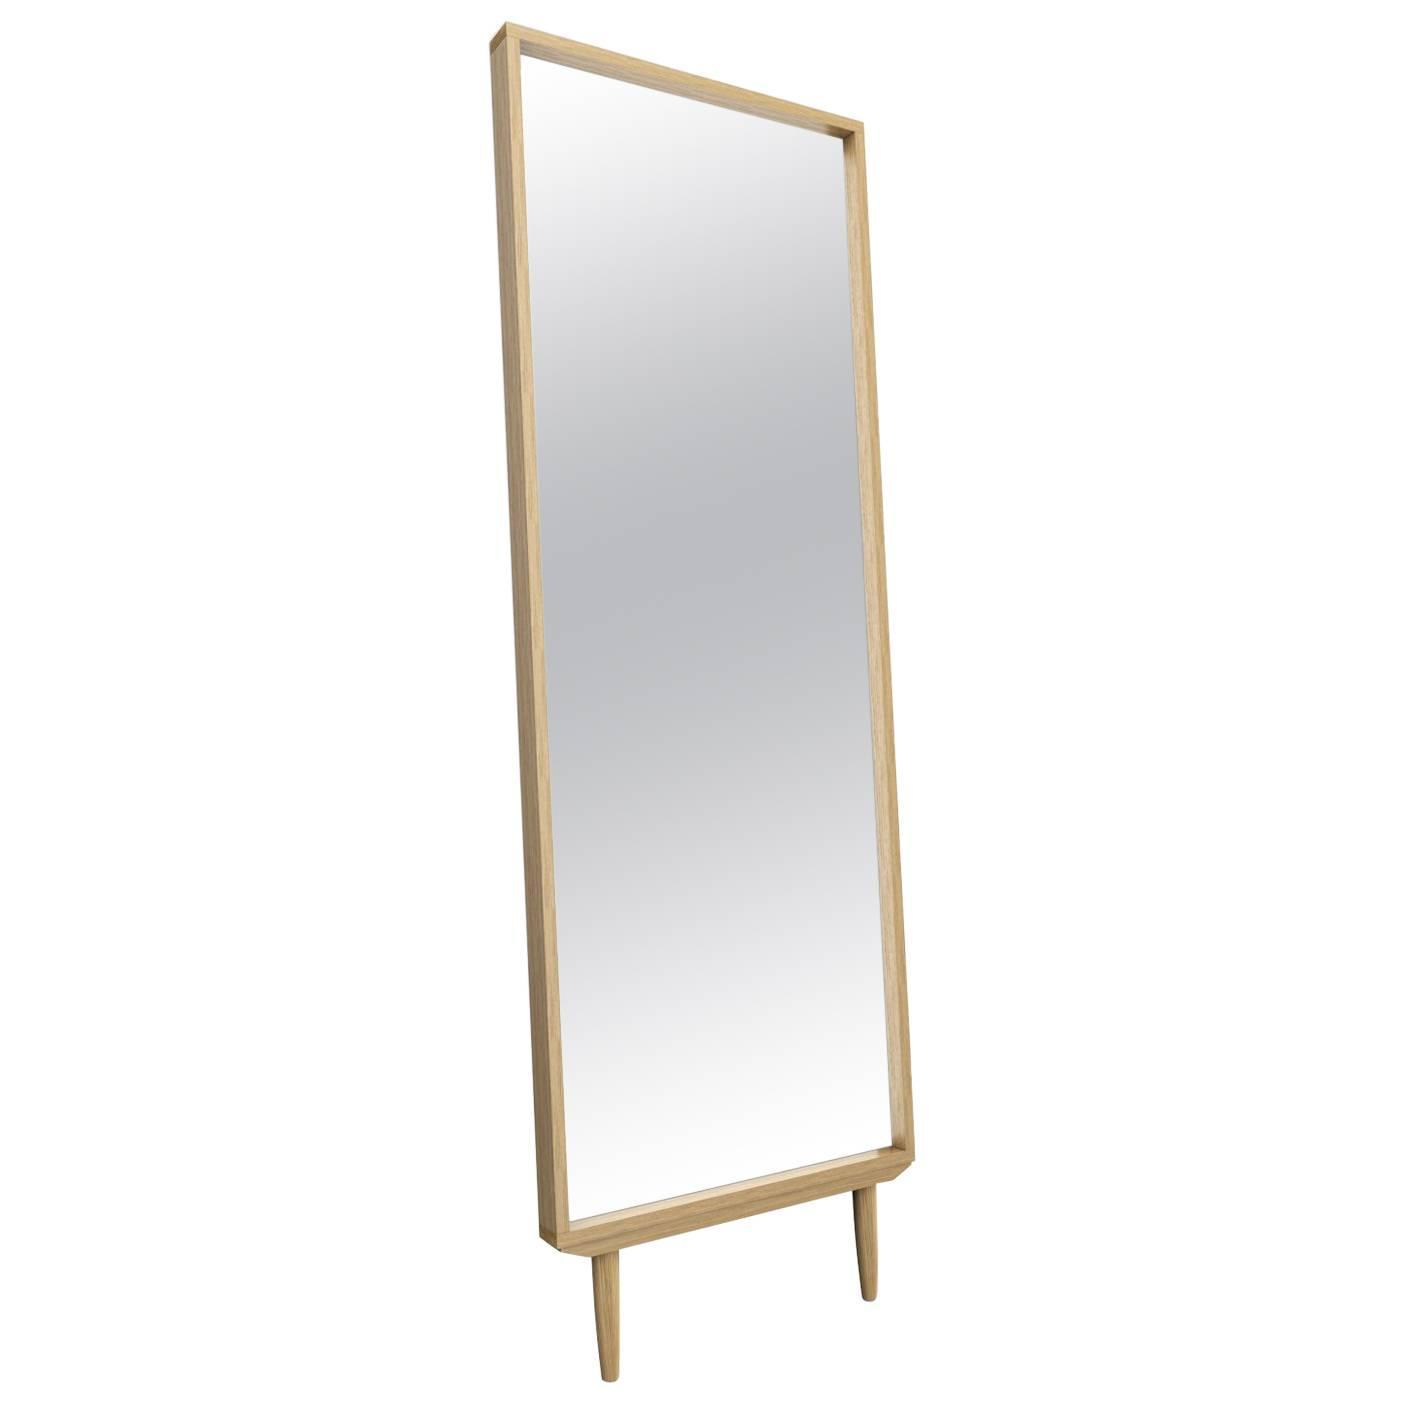 midcentury modern floor mirrors and fulllength mirrors   for  - solid white oak leaning modern floor mirror